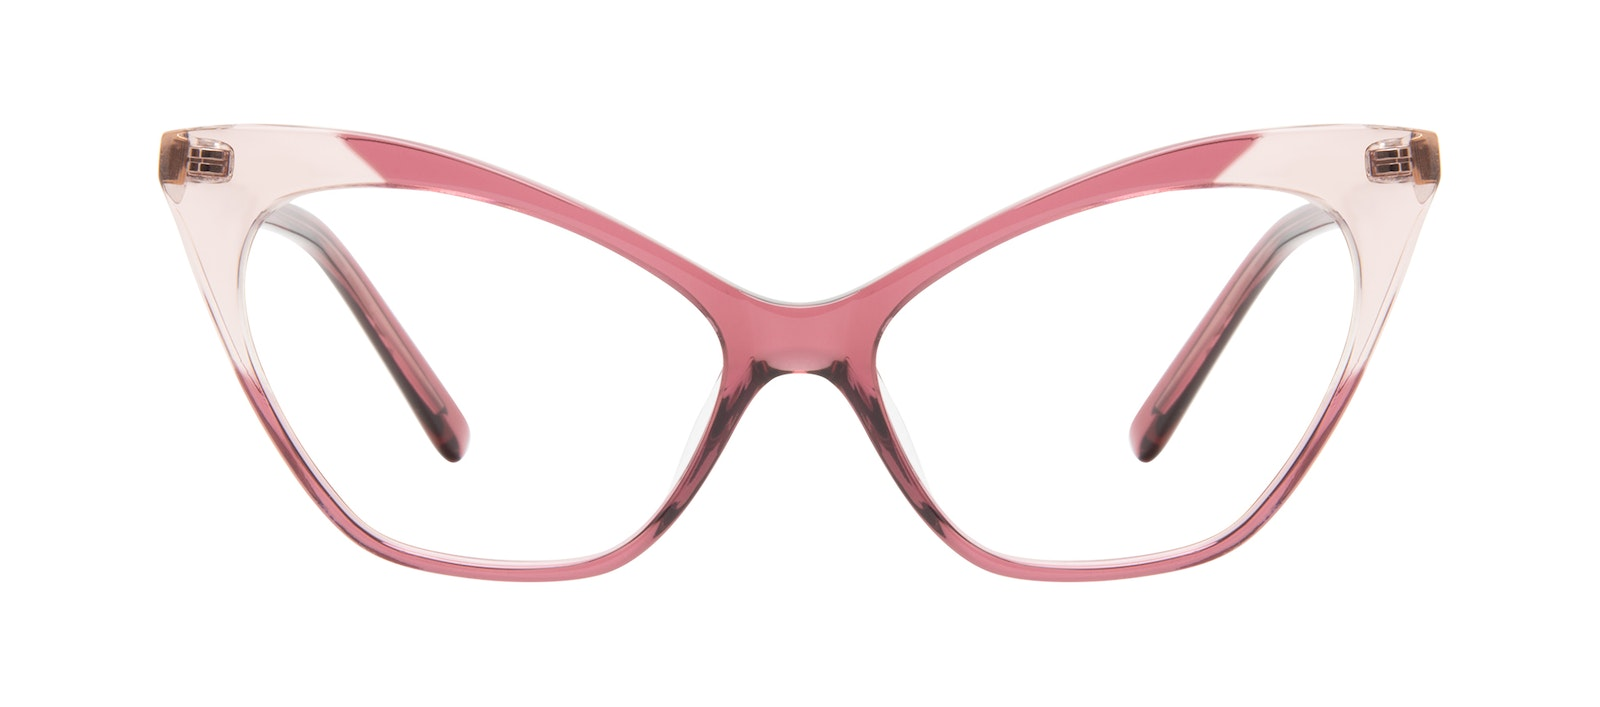 Affordable Fashion Glasses Cat Eye Eyeglasses Women Gossip Orchid Pink Front